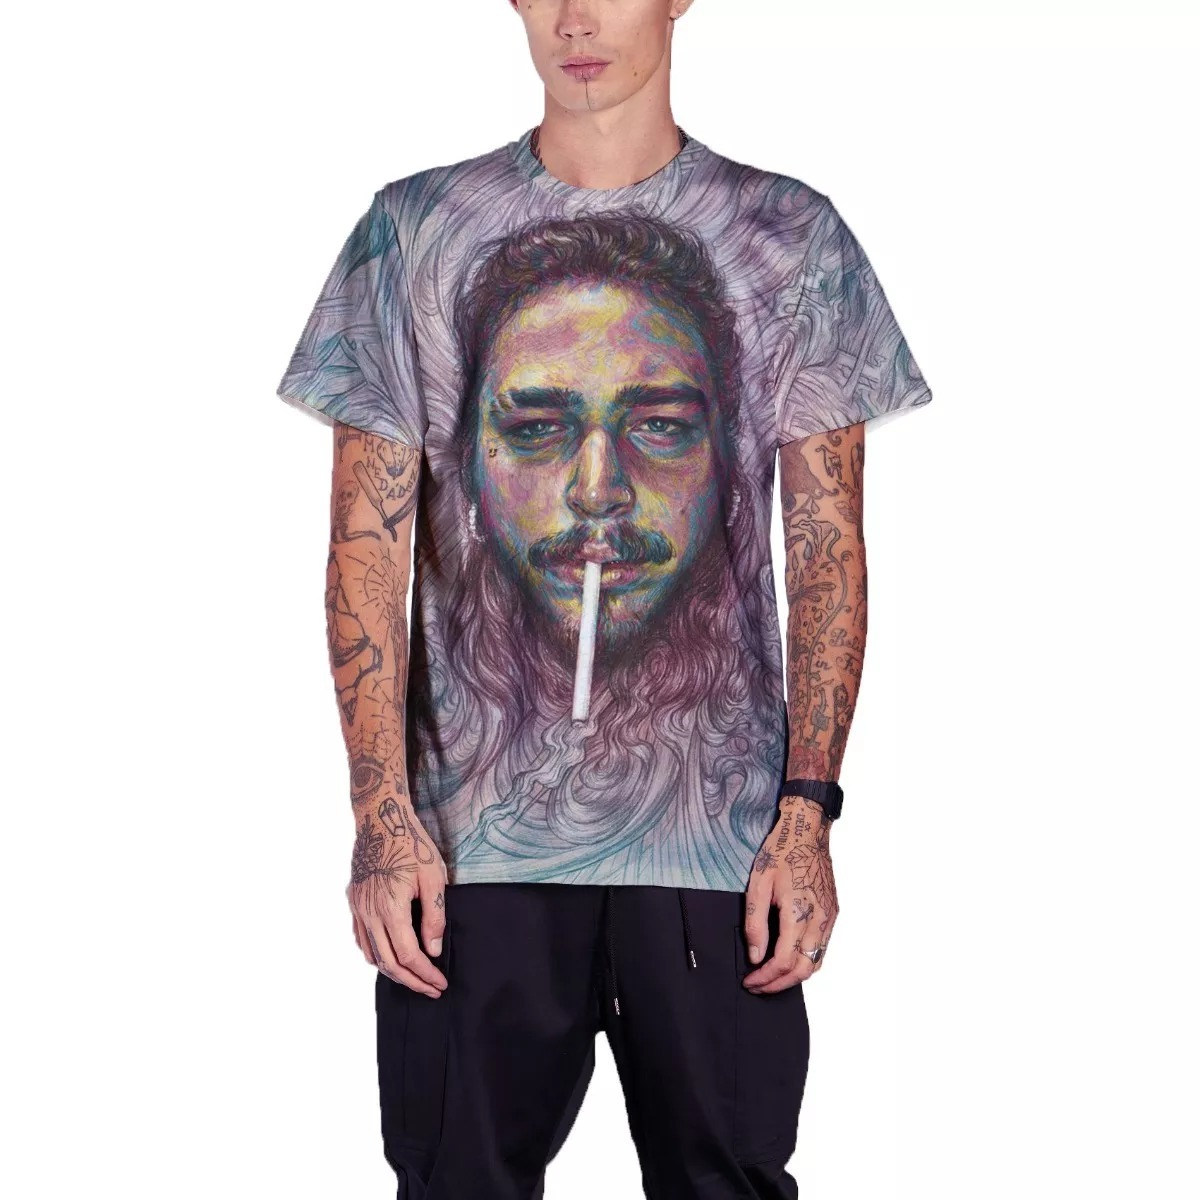 05fa052a1 camisa camiseta post malone cantor rap hip hop. Carregando zoom.